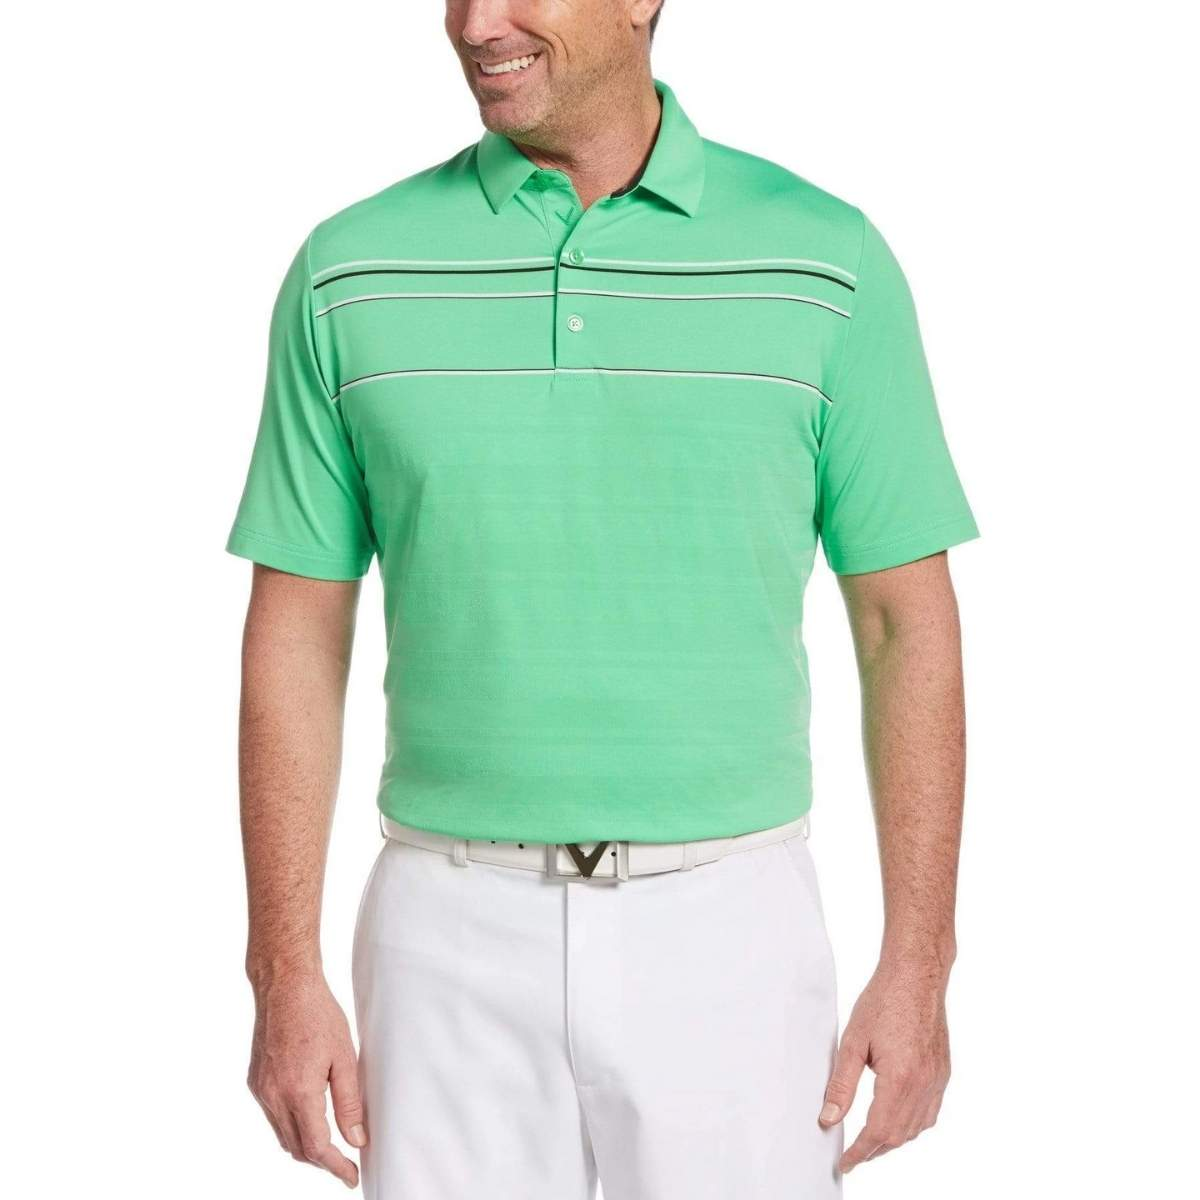 Callaway Mens Engineered Stripe Textured Chest Swing Tech Polo